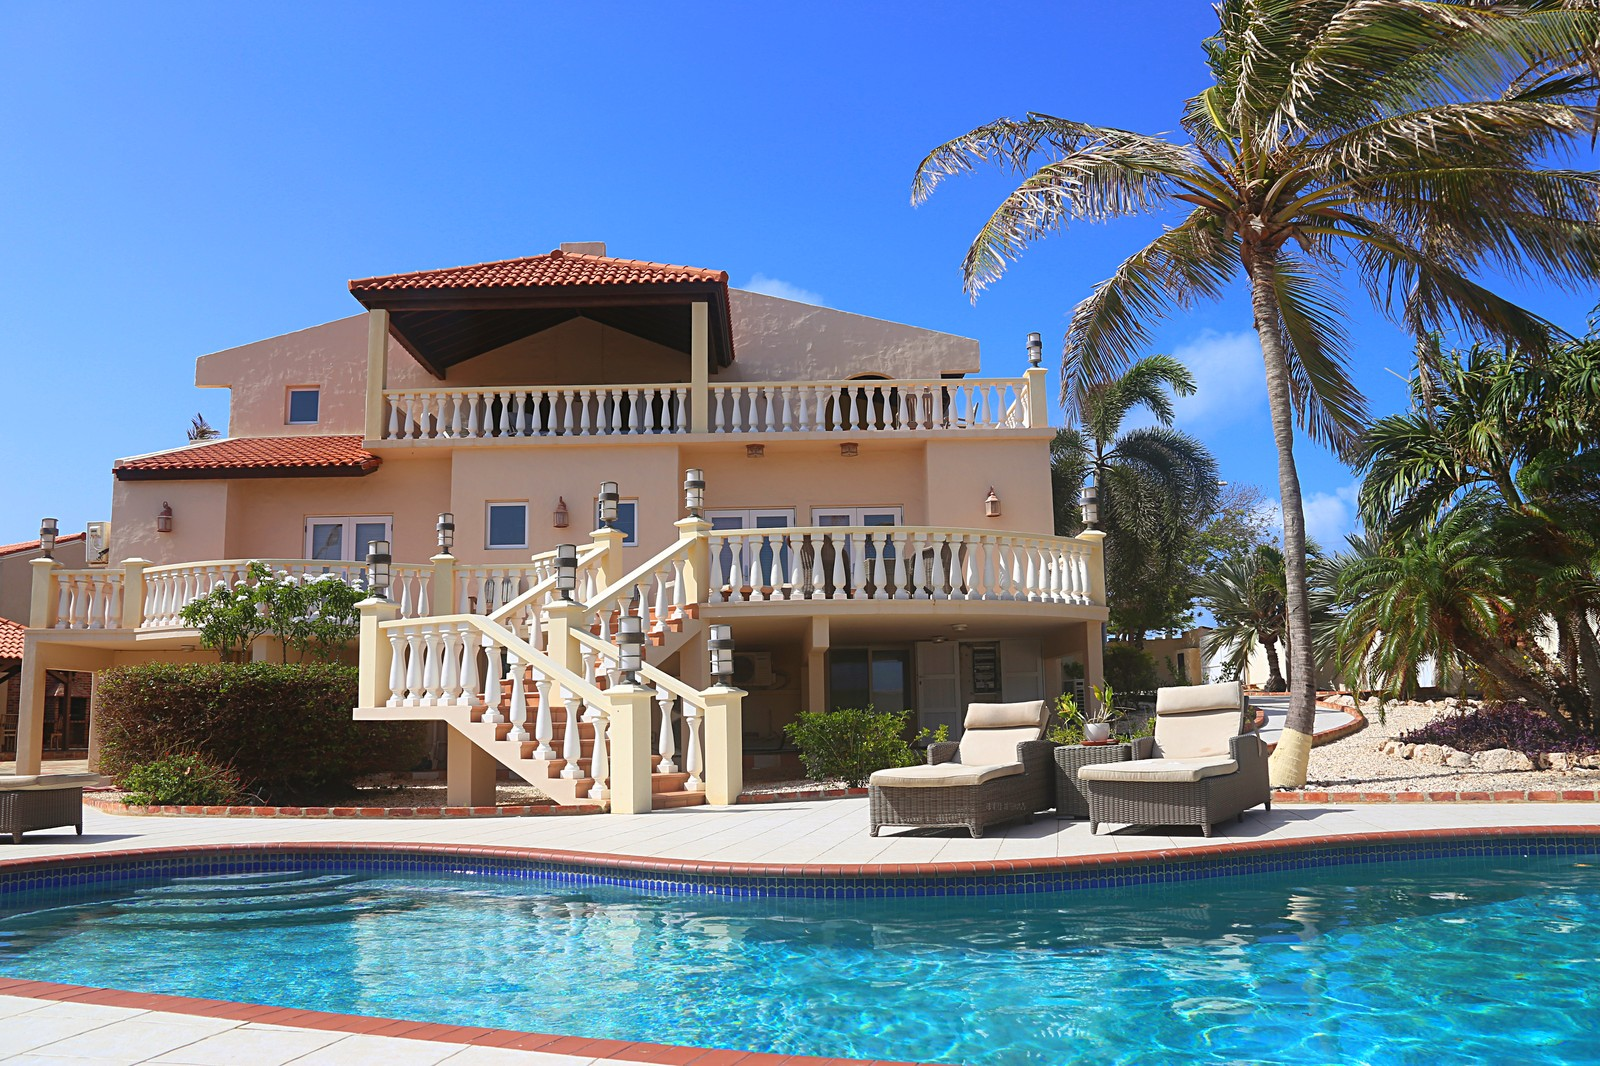 Captivating Villa For Sale With Spectacular Ocean Views